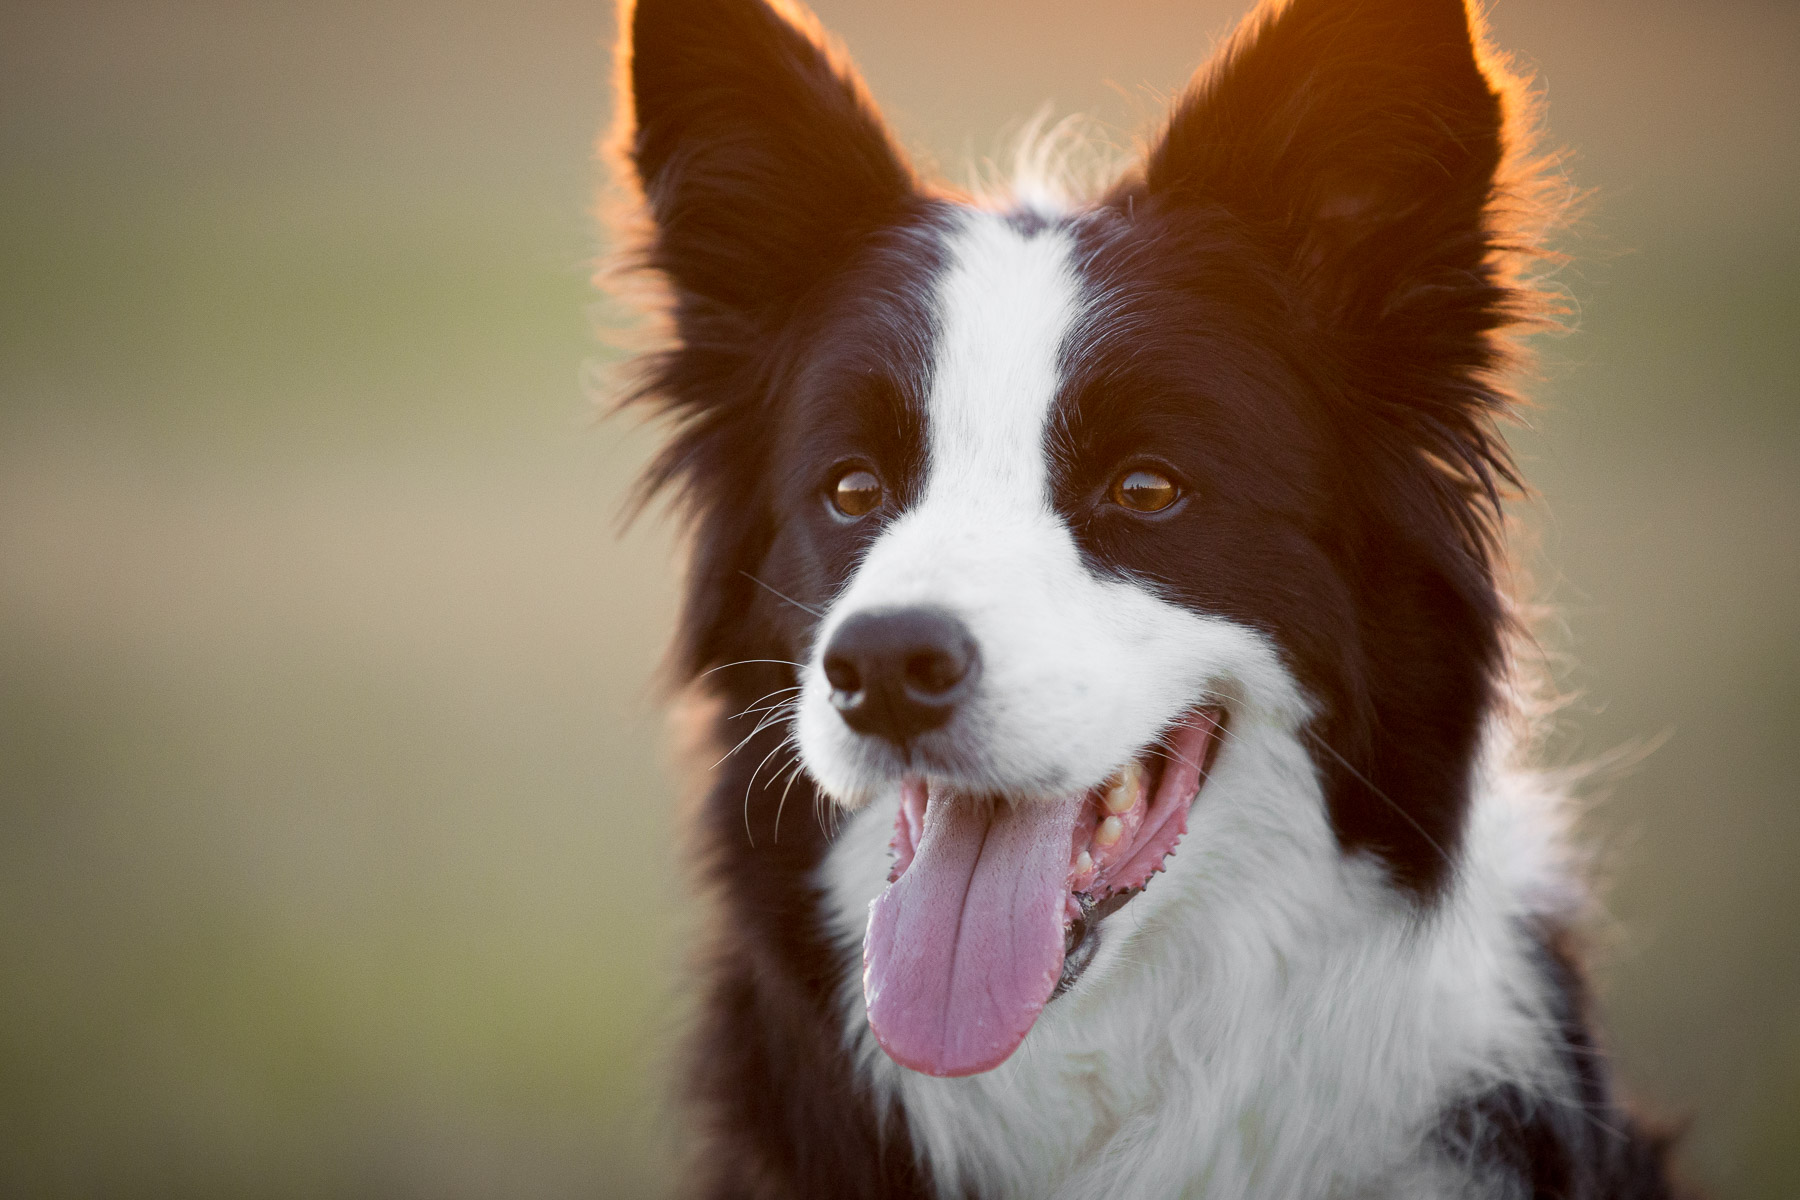 collie-tongue-out-dog-photography.jpg